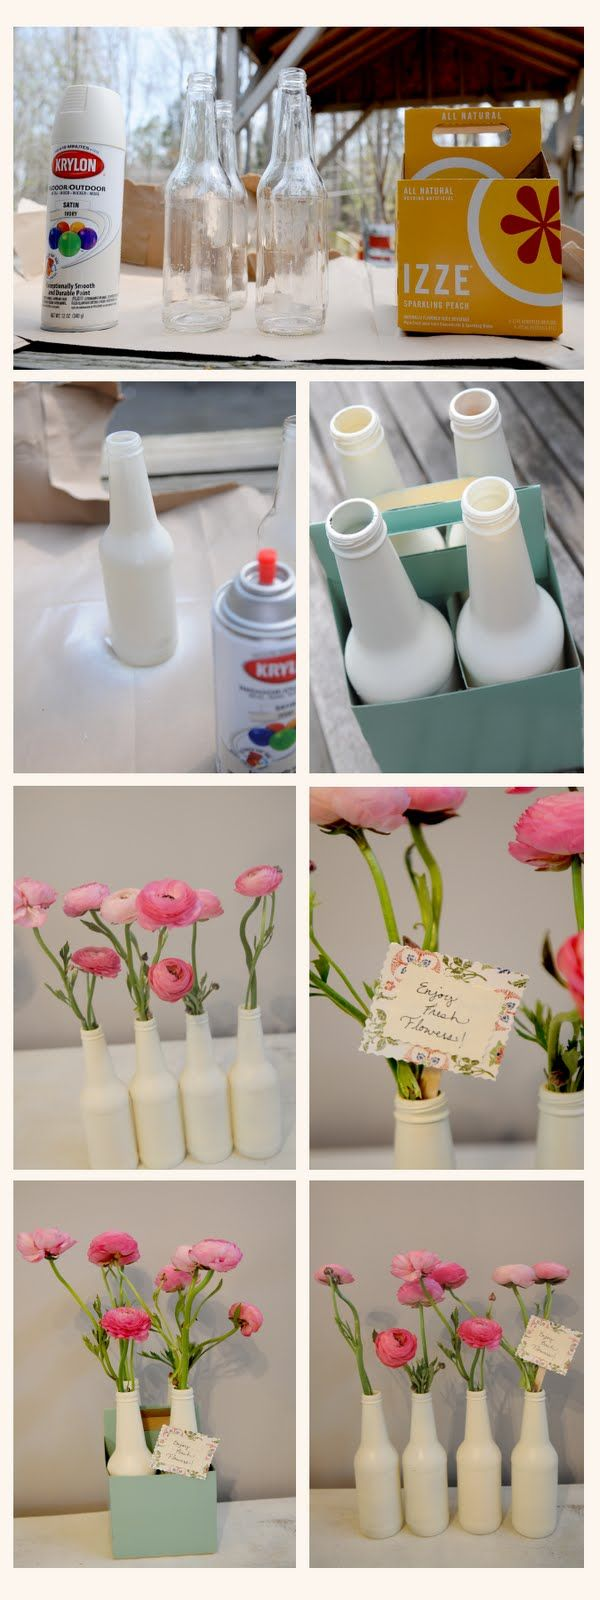 The Colorful Living Project: Spray Bottles DIY Project: Part One